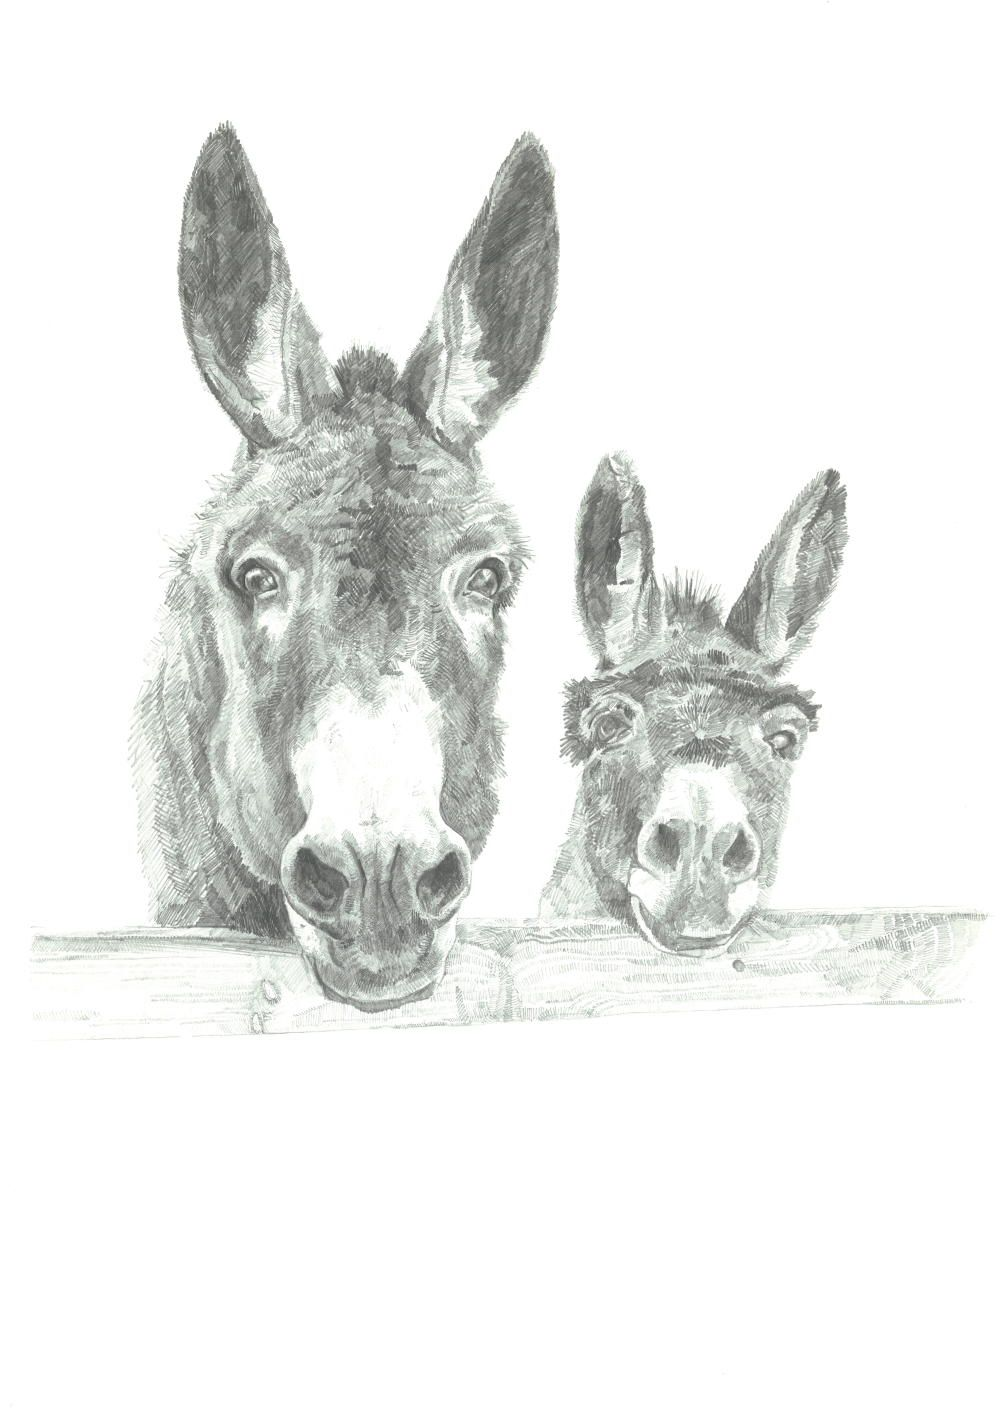 donkey illustrations drawing - Google Search | Animal ...